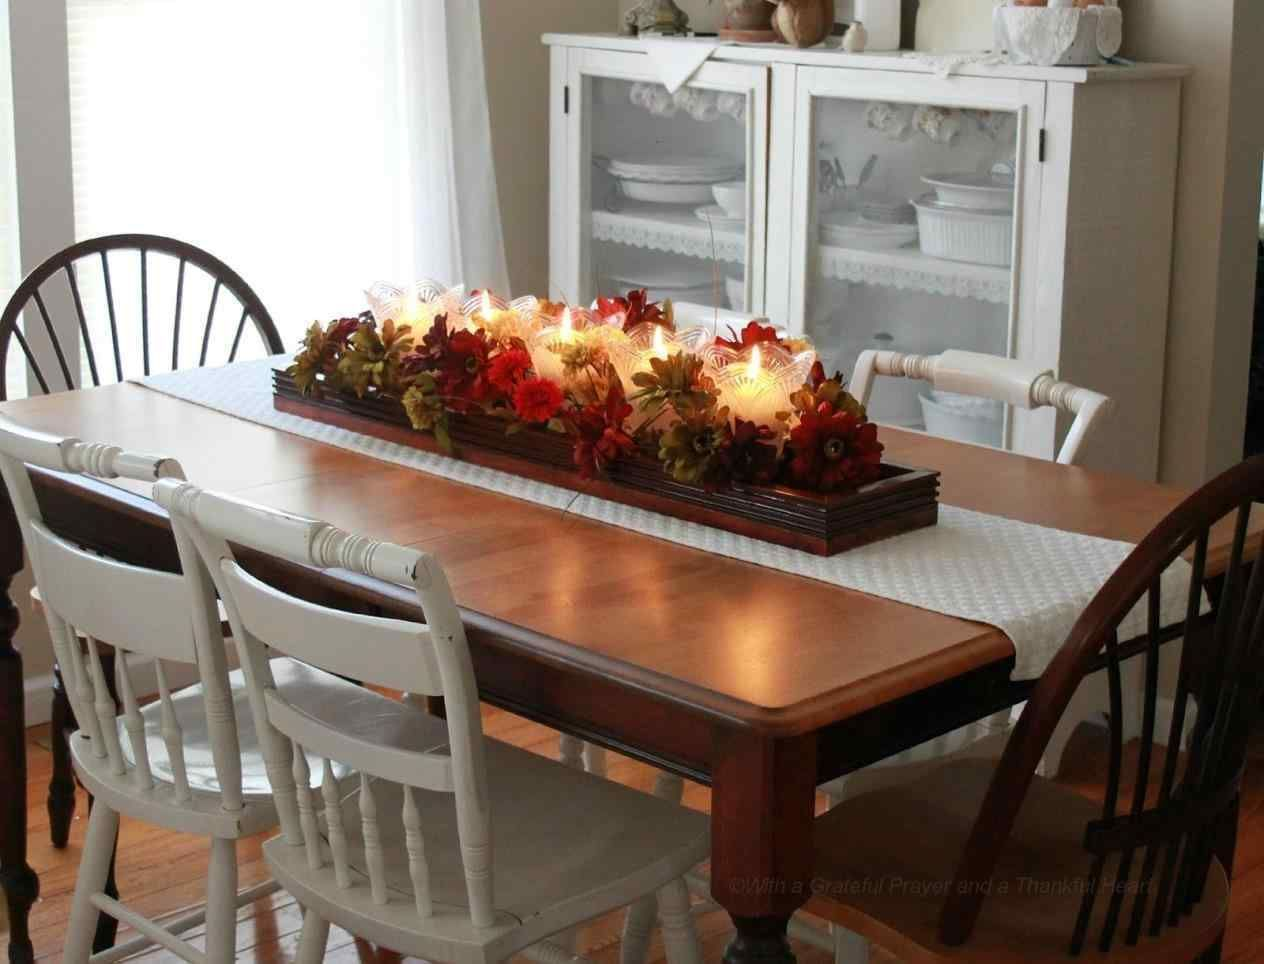 8 Top And Wonderful Centerpieces For Dining Tables Contemporary Breakpr Kitchen Table Centerpiece Coffe Table Decor Dining Room Table Centerpieces